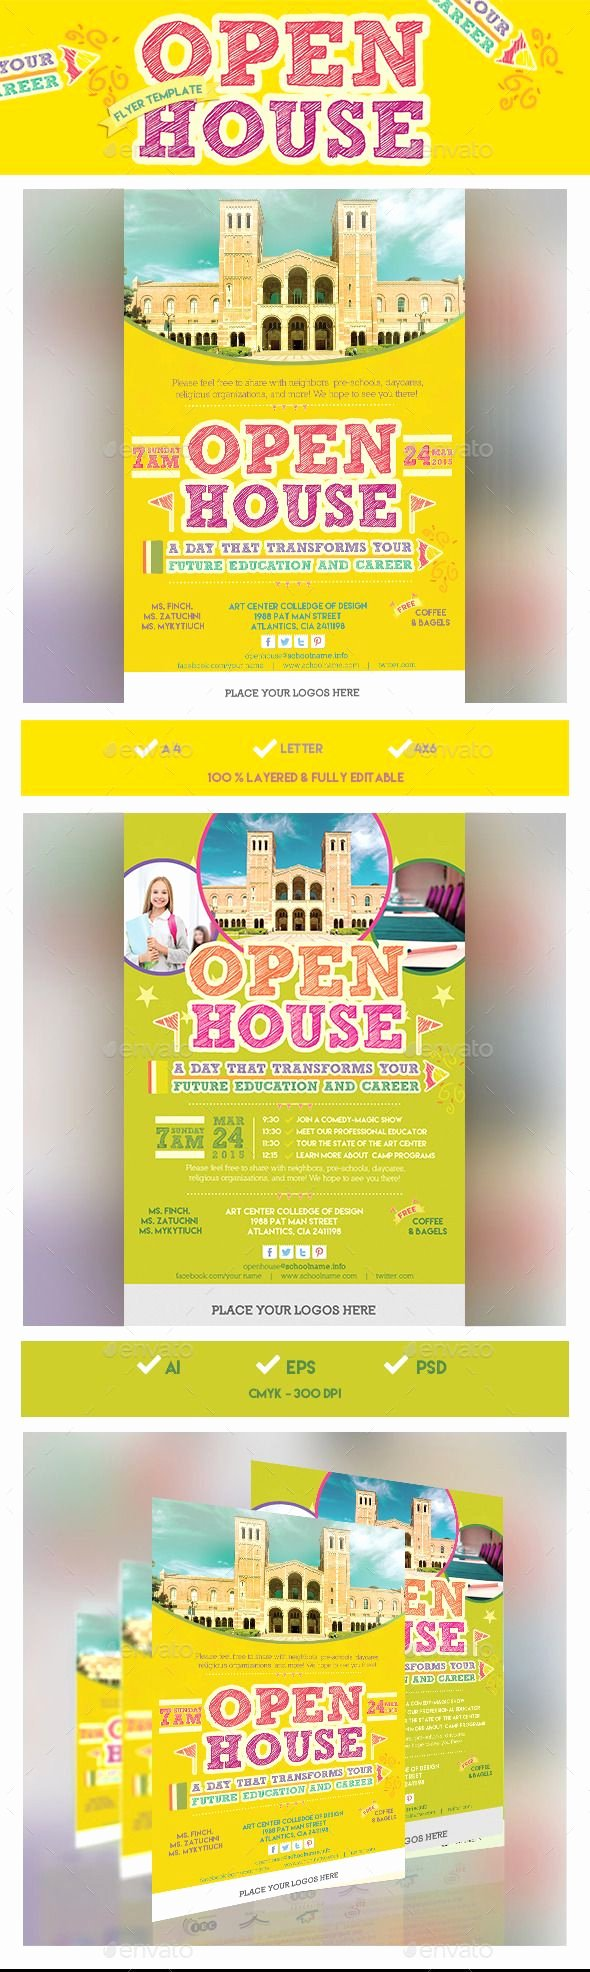 Open House Brochure Template Inspirational 1000 Ideas About Open House Invitation On Pinterest